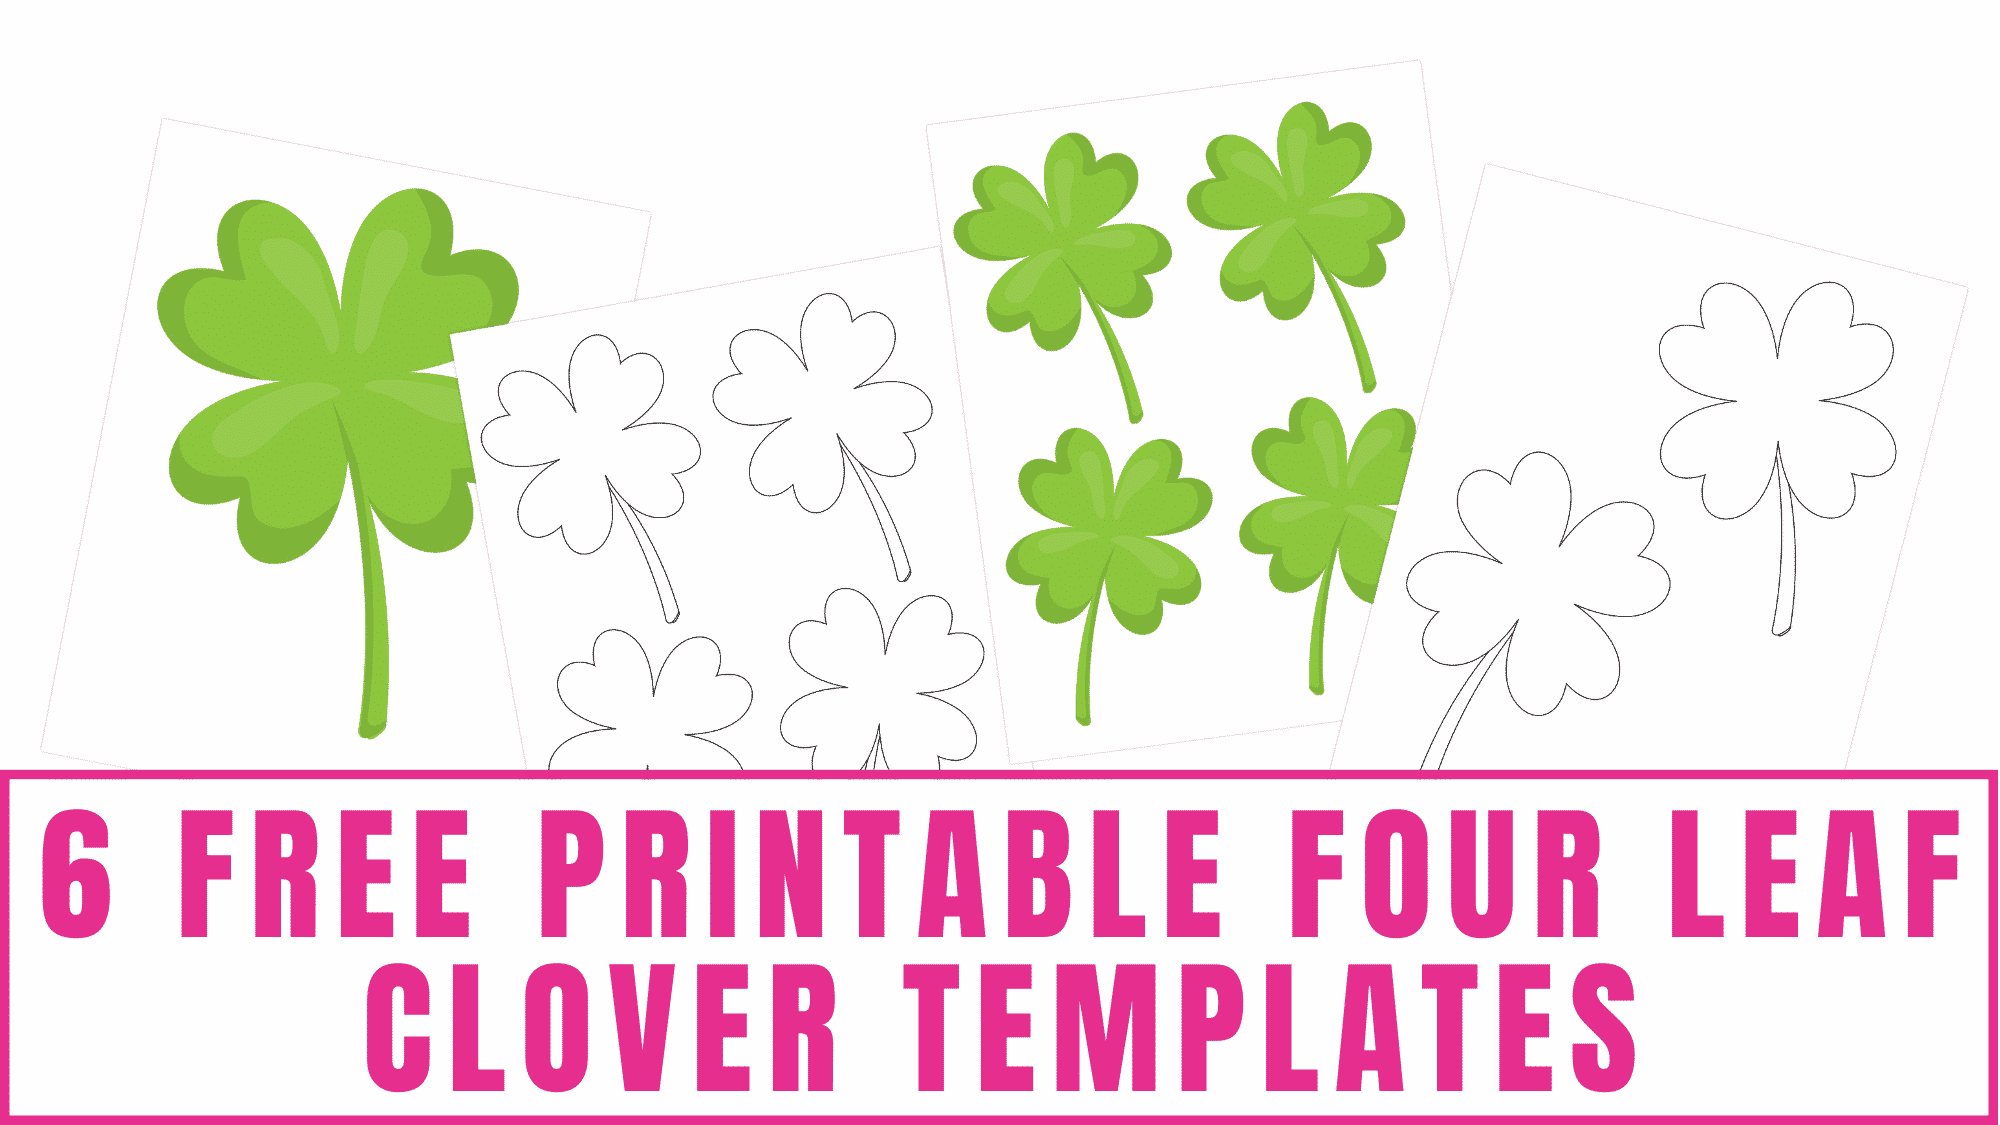 These free printable four leaf clover templates will come in handy for lots of fun St. Patrick's Day activities.